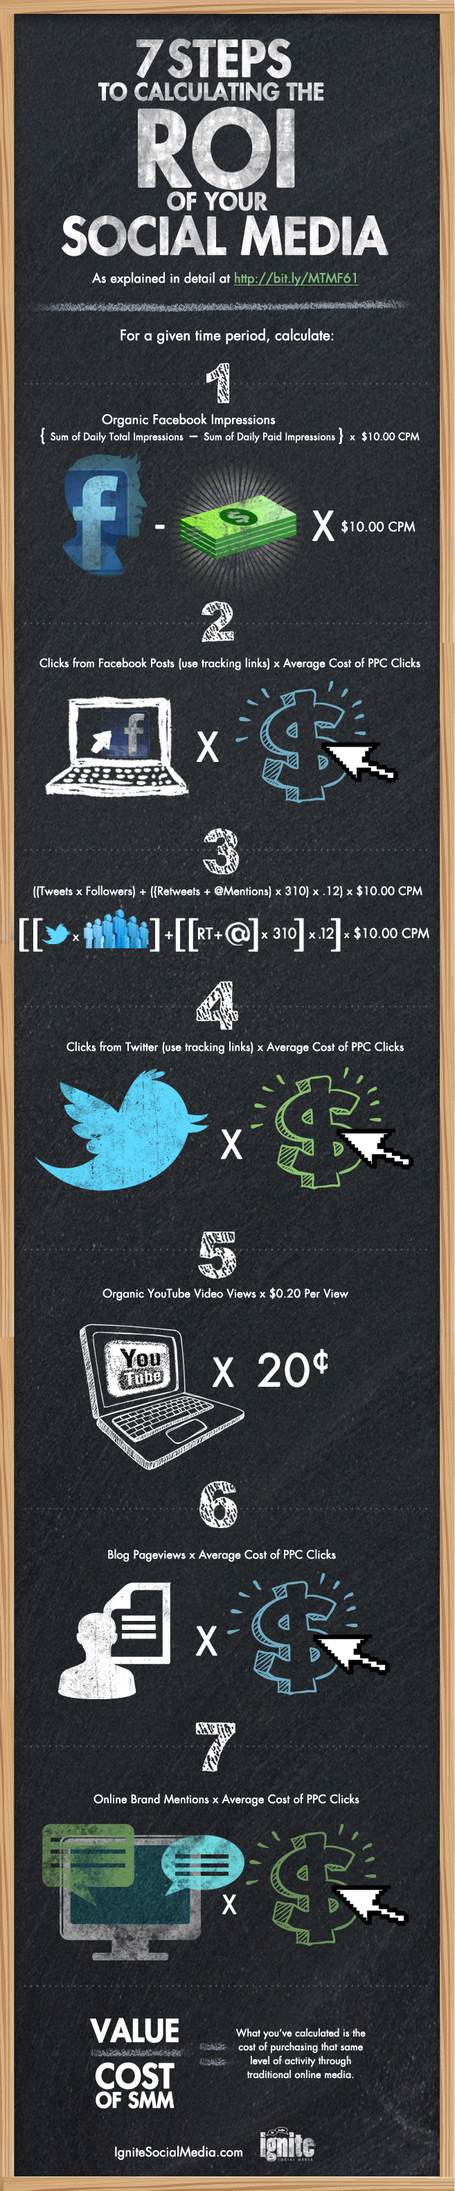 7 Steps To Calculate Your Social Media ROI [Infographic] | Public Relations & Social Media Insight | Scoop.it